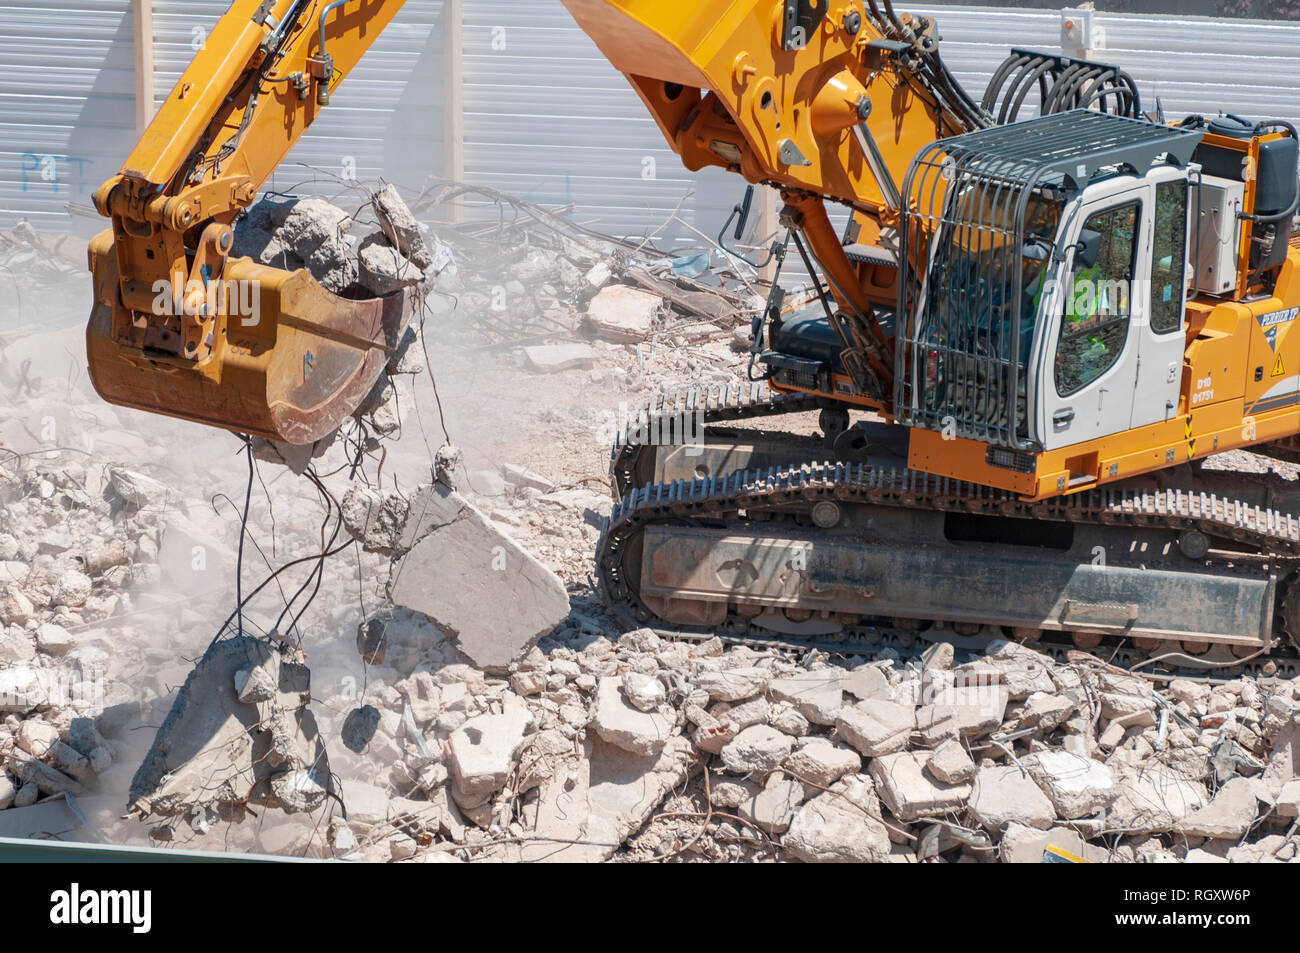 Demolition site. An excavator equipped with a bucket, evacuates reinforced concrete rubble. - Stock Image